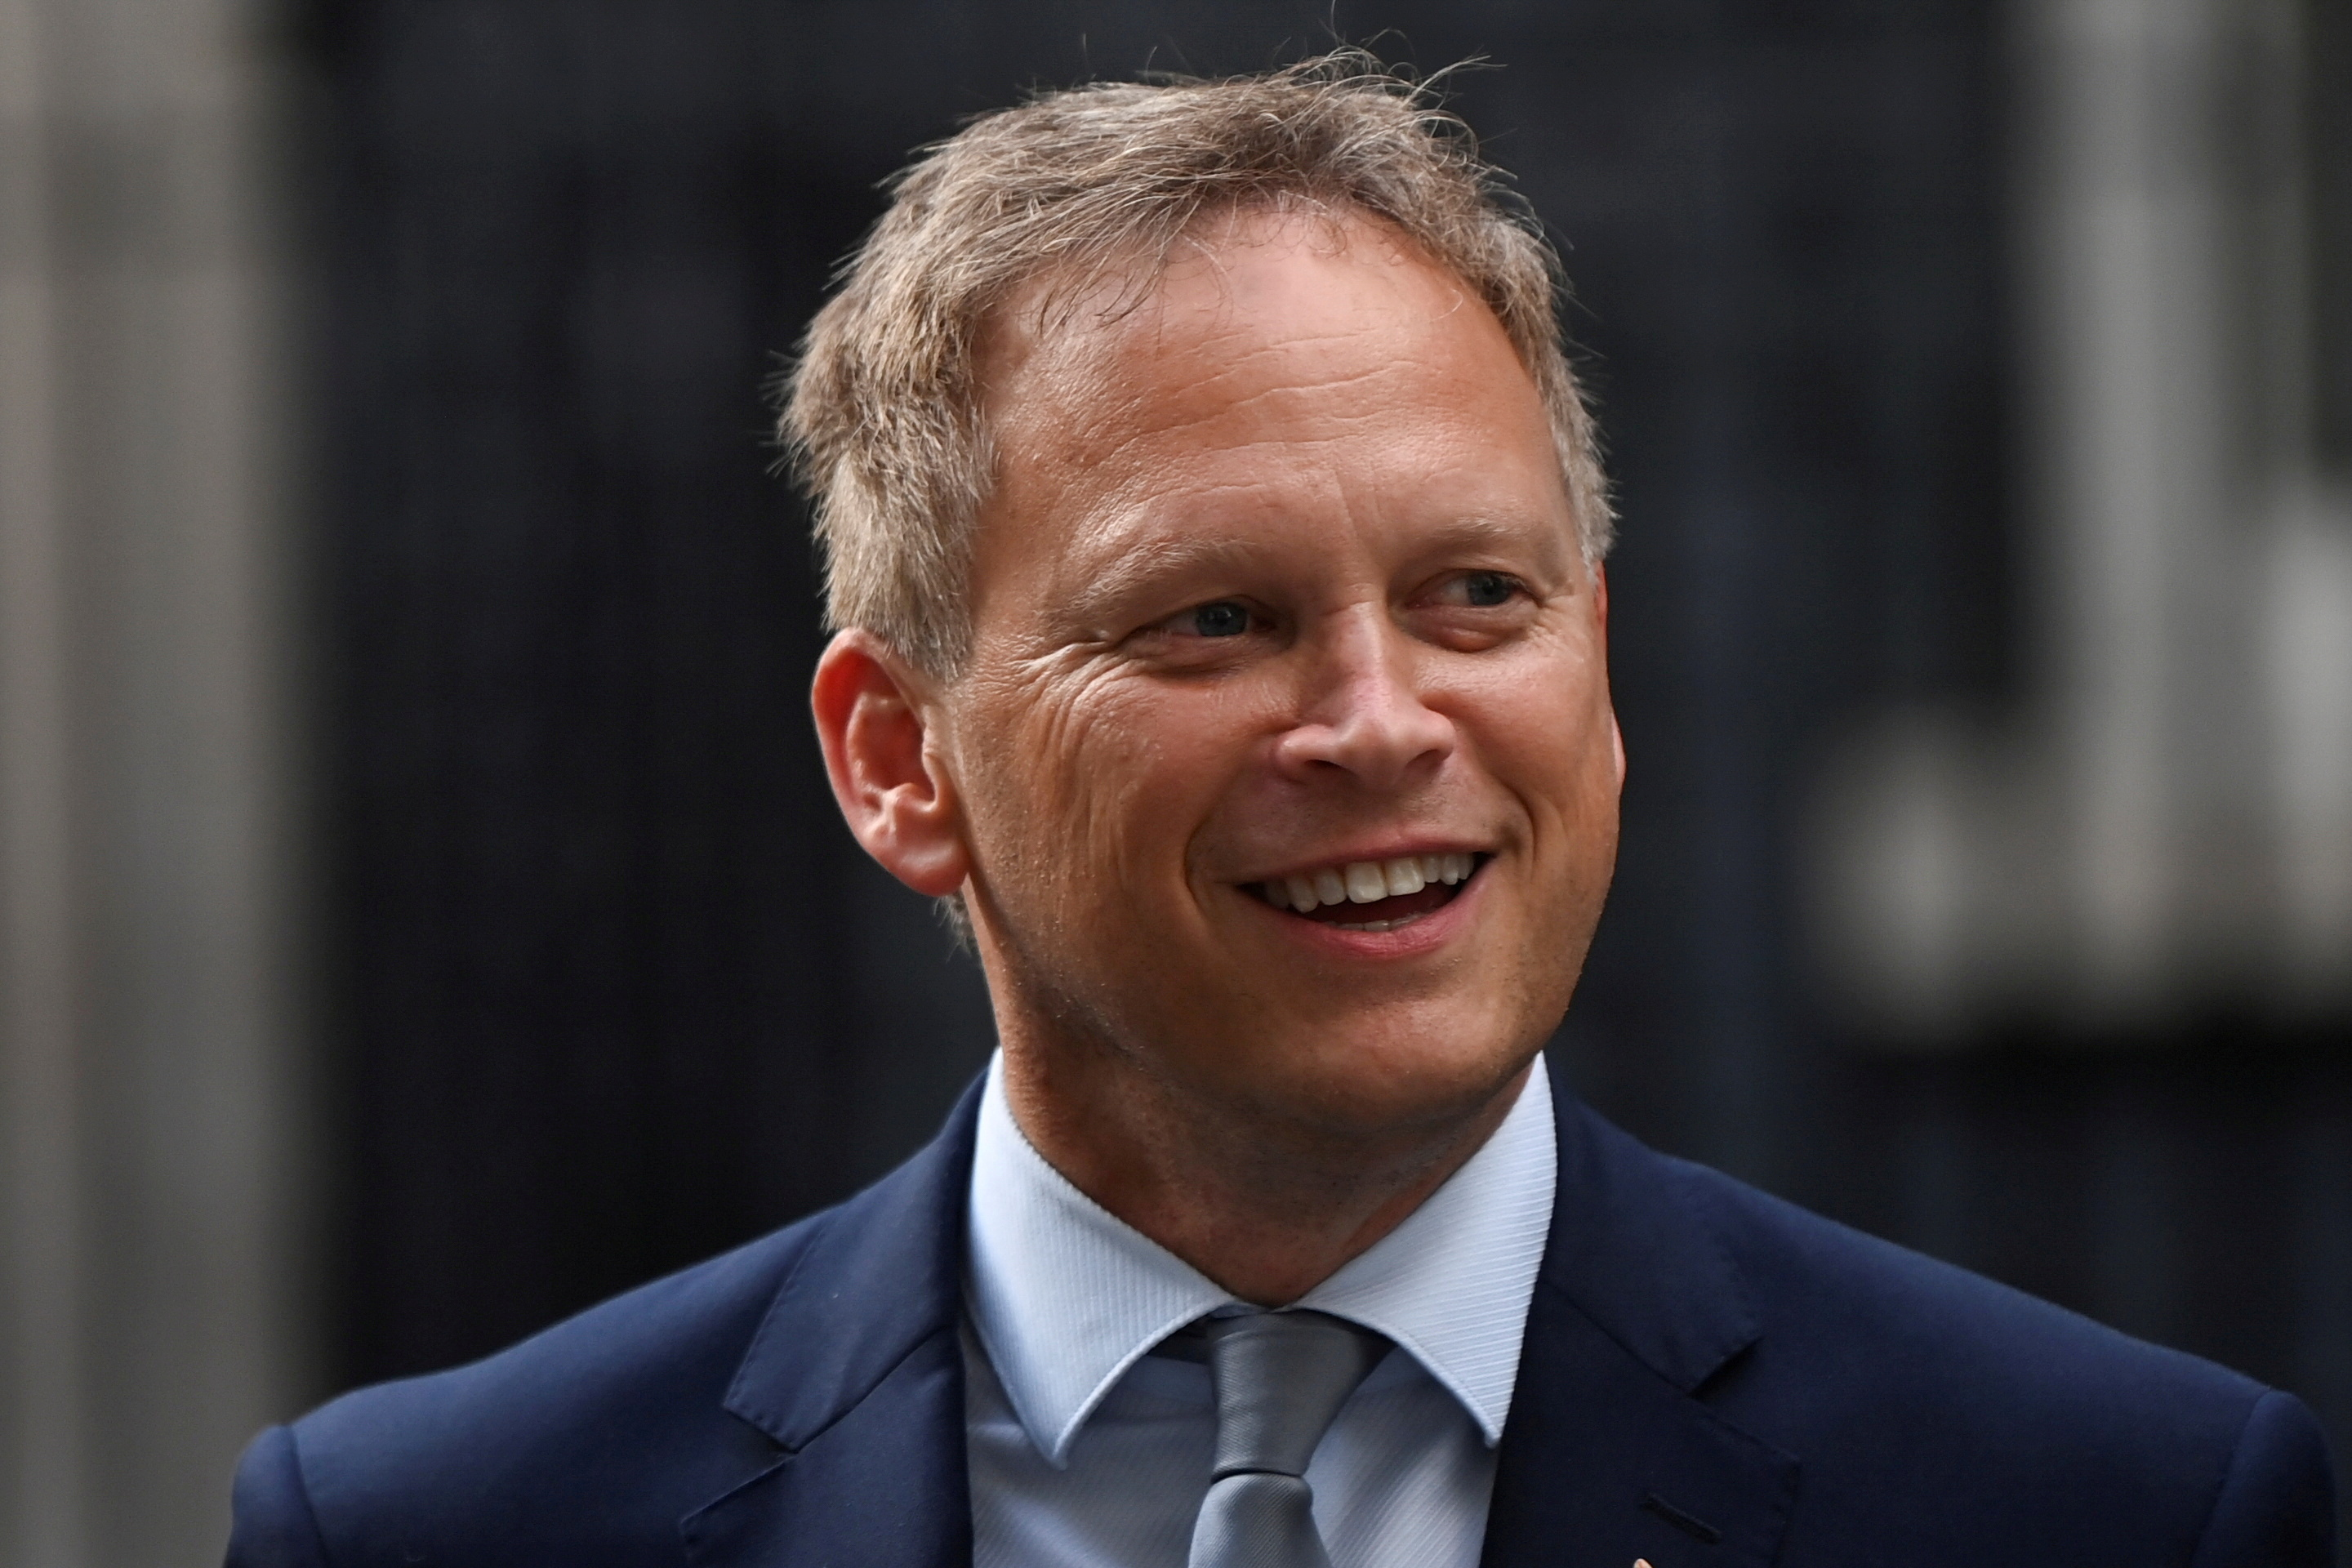 Britain's Transport Secretary Grant Shapps walks outside Downing Street in London, Britain, September 15, 2021. REUTERS/Toby Melville/File Photo